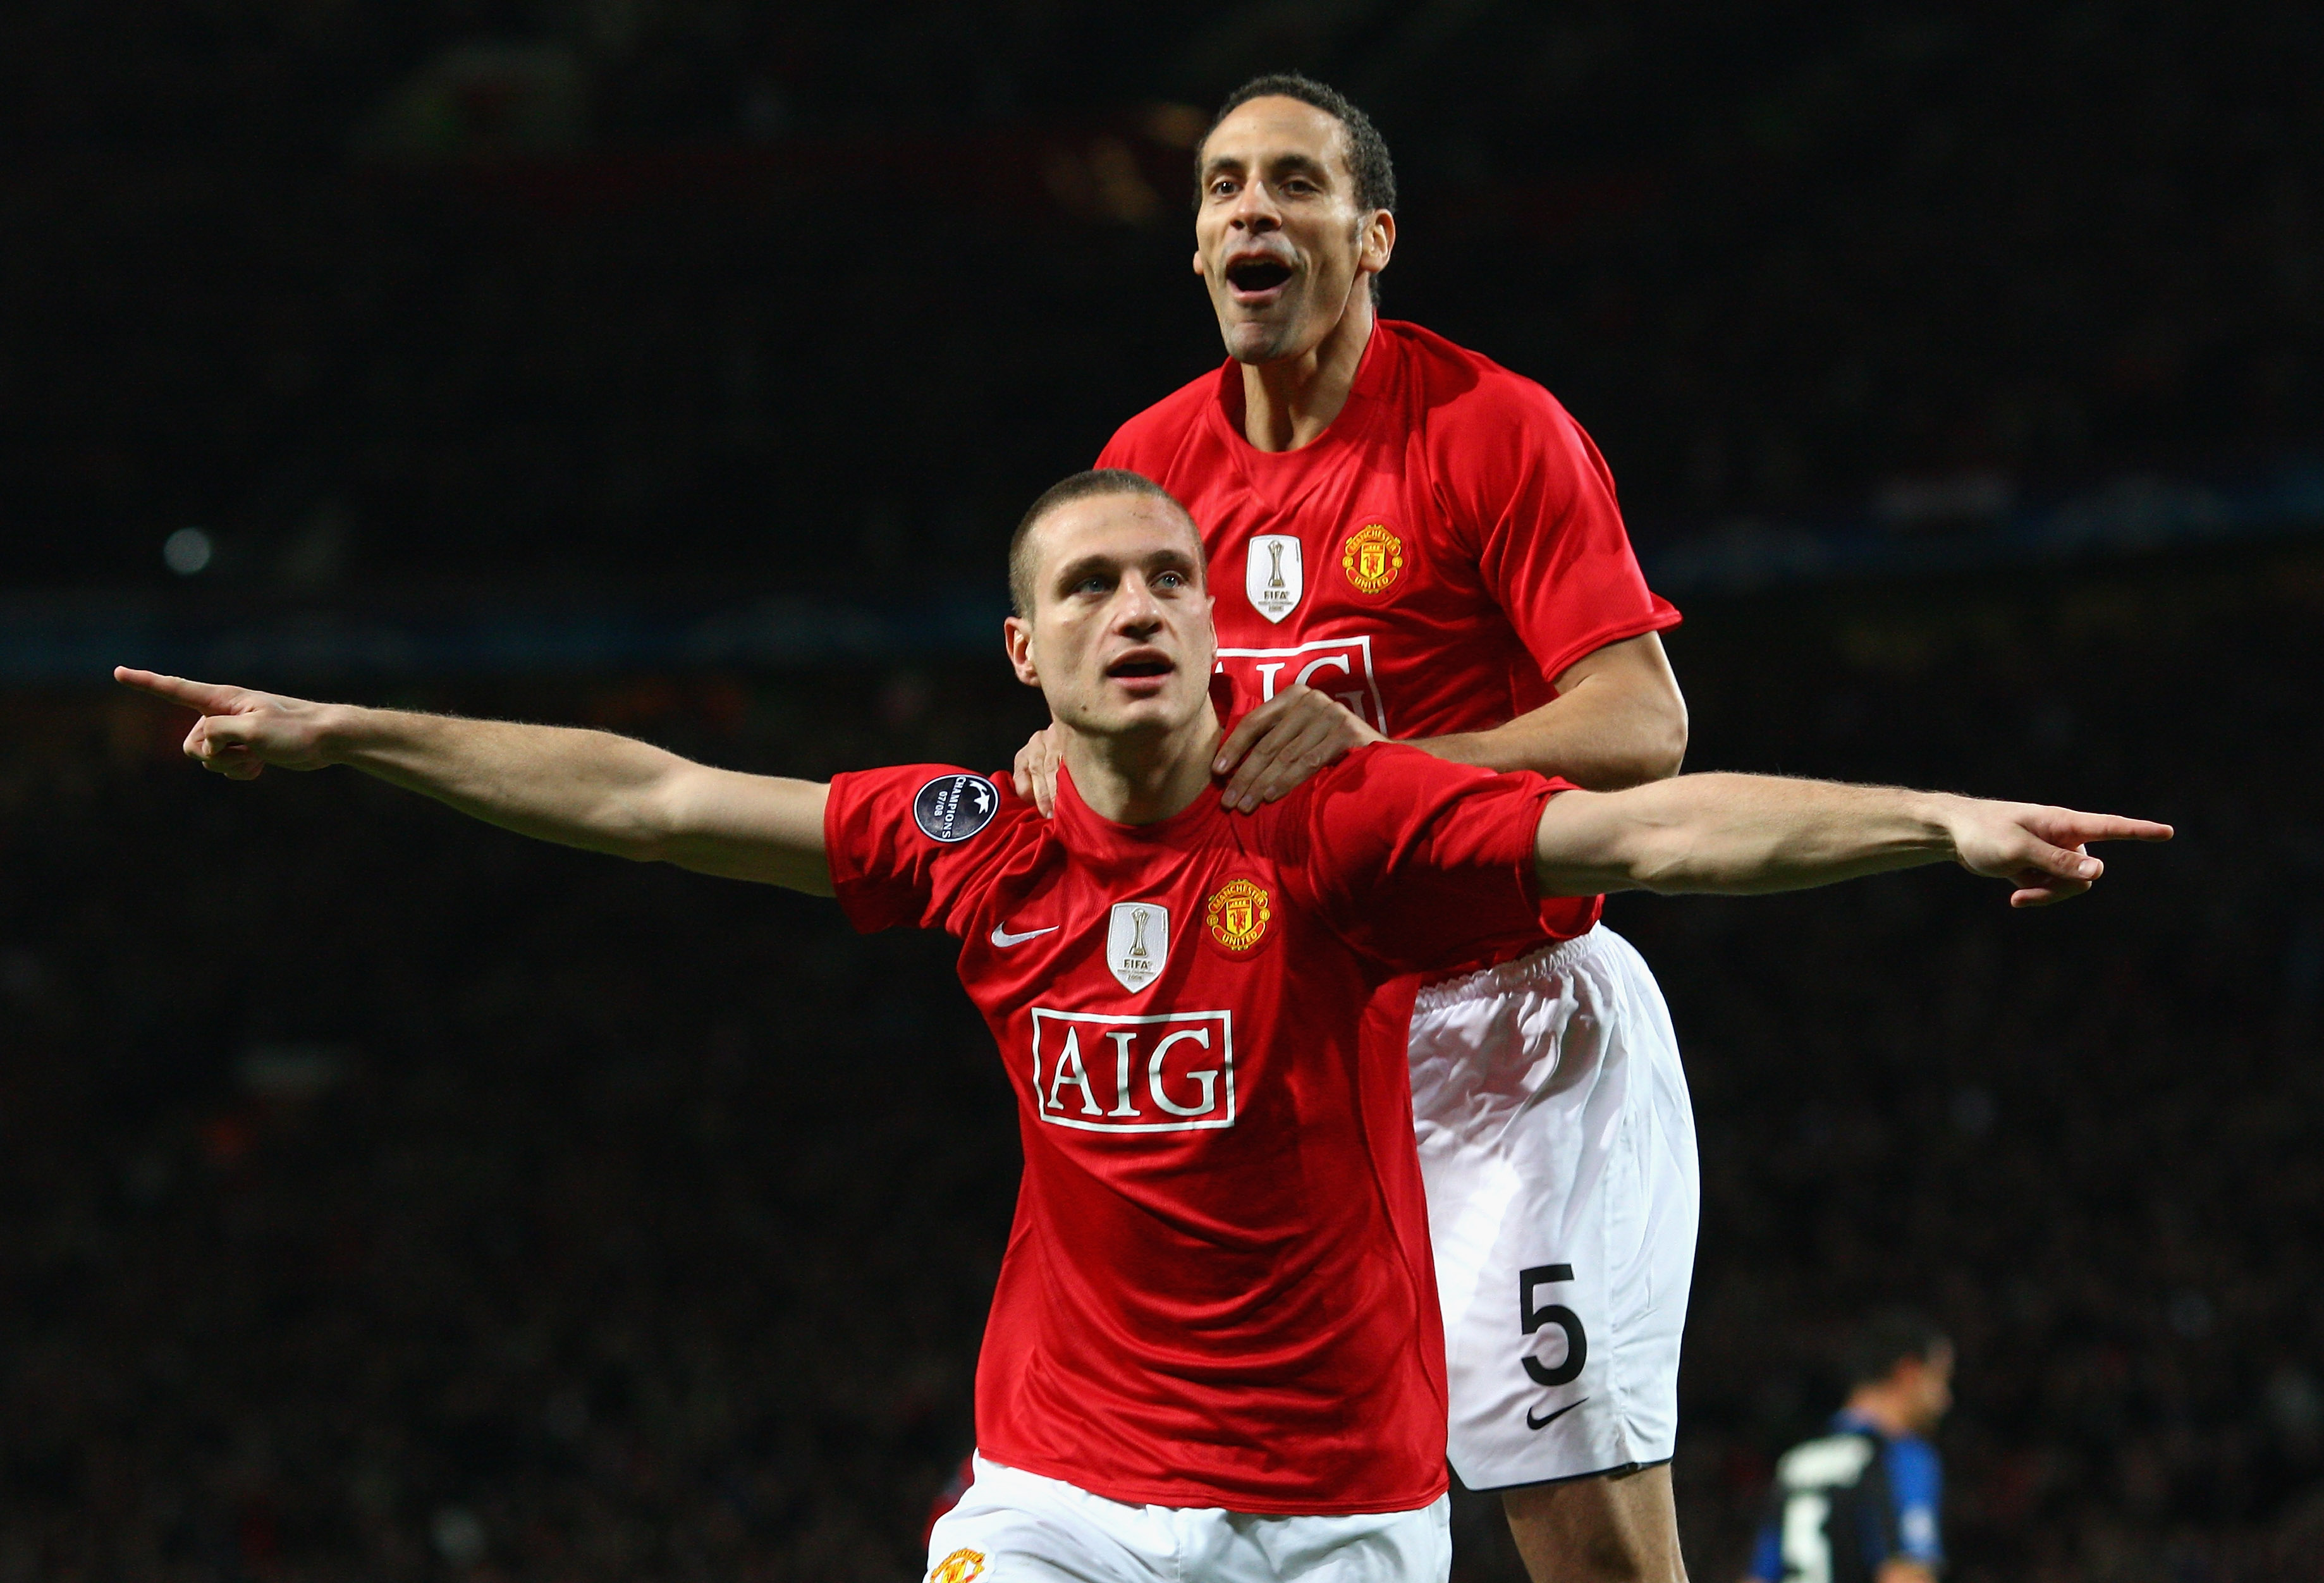 The contrasting reactions of Rio Ferdinand and Nemanja Vidic to